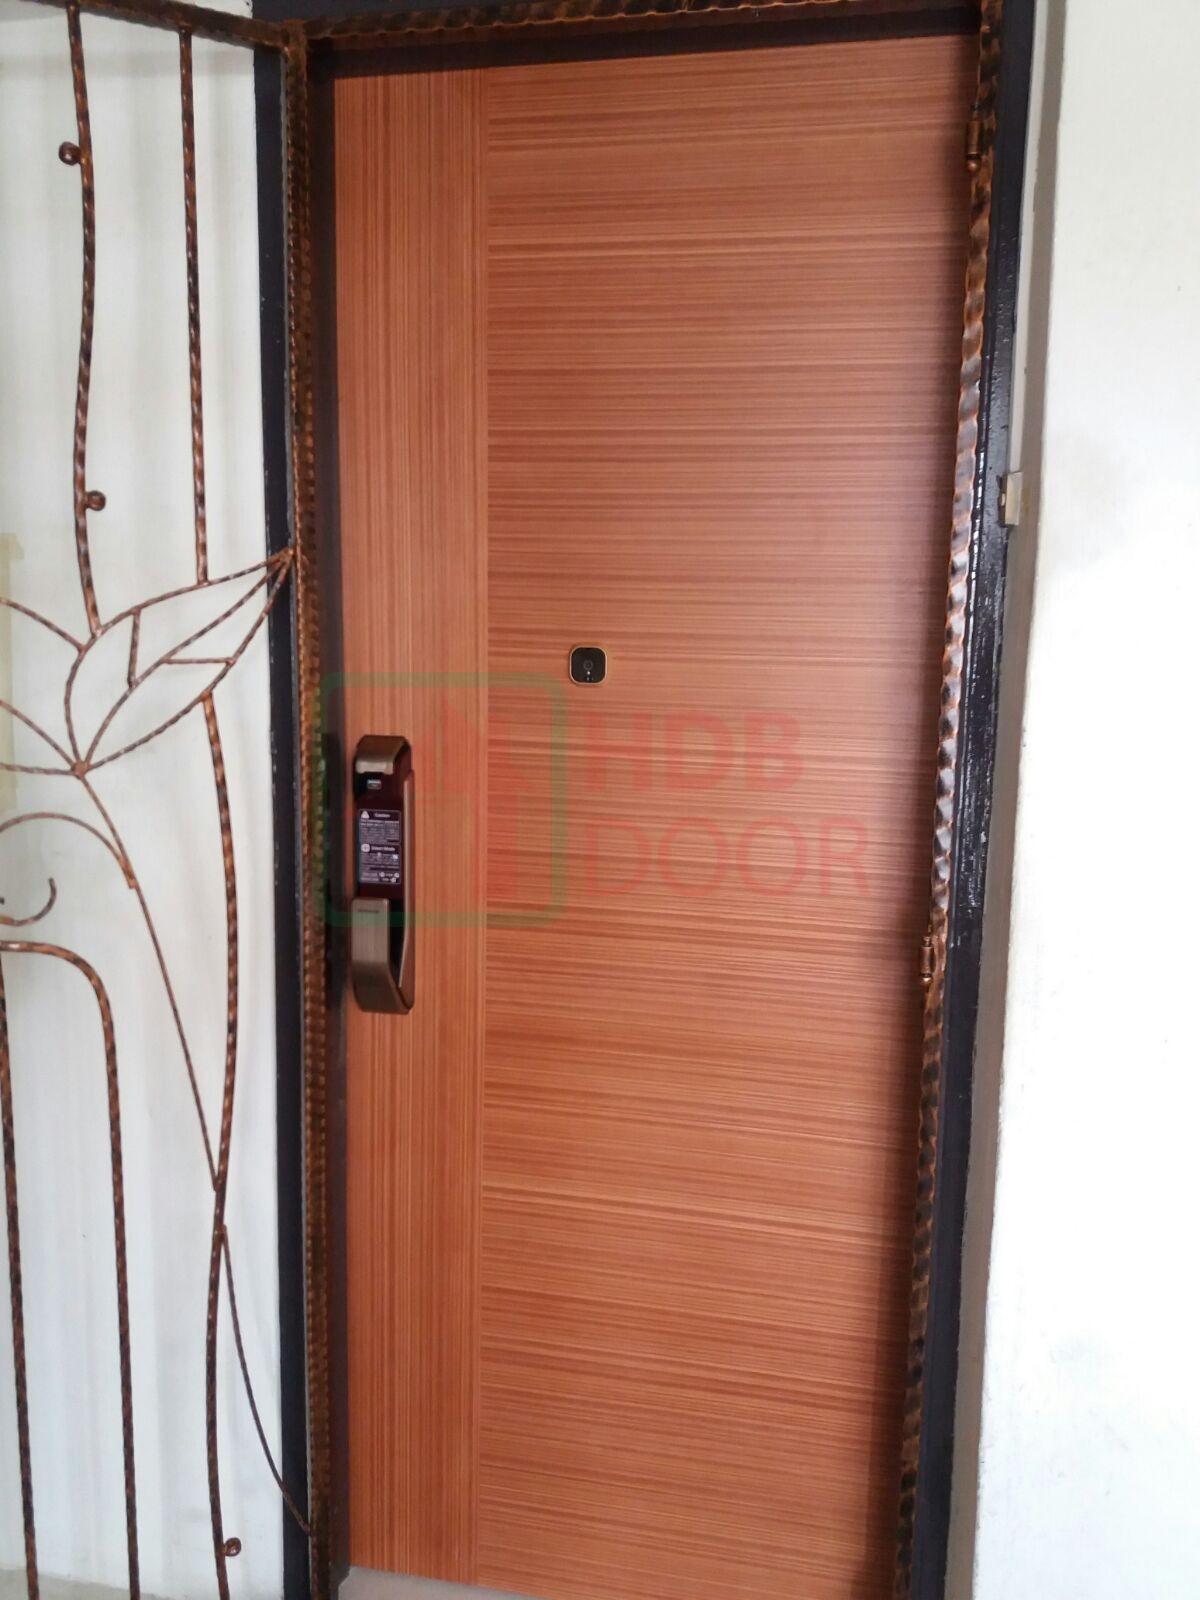 hdb laminate fire rated main door with samsung p718/p910 gold and digital door viewer